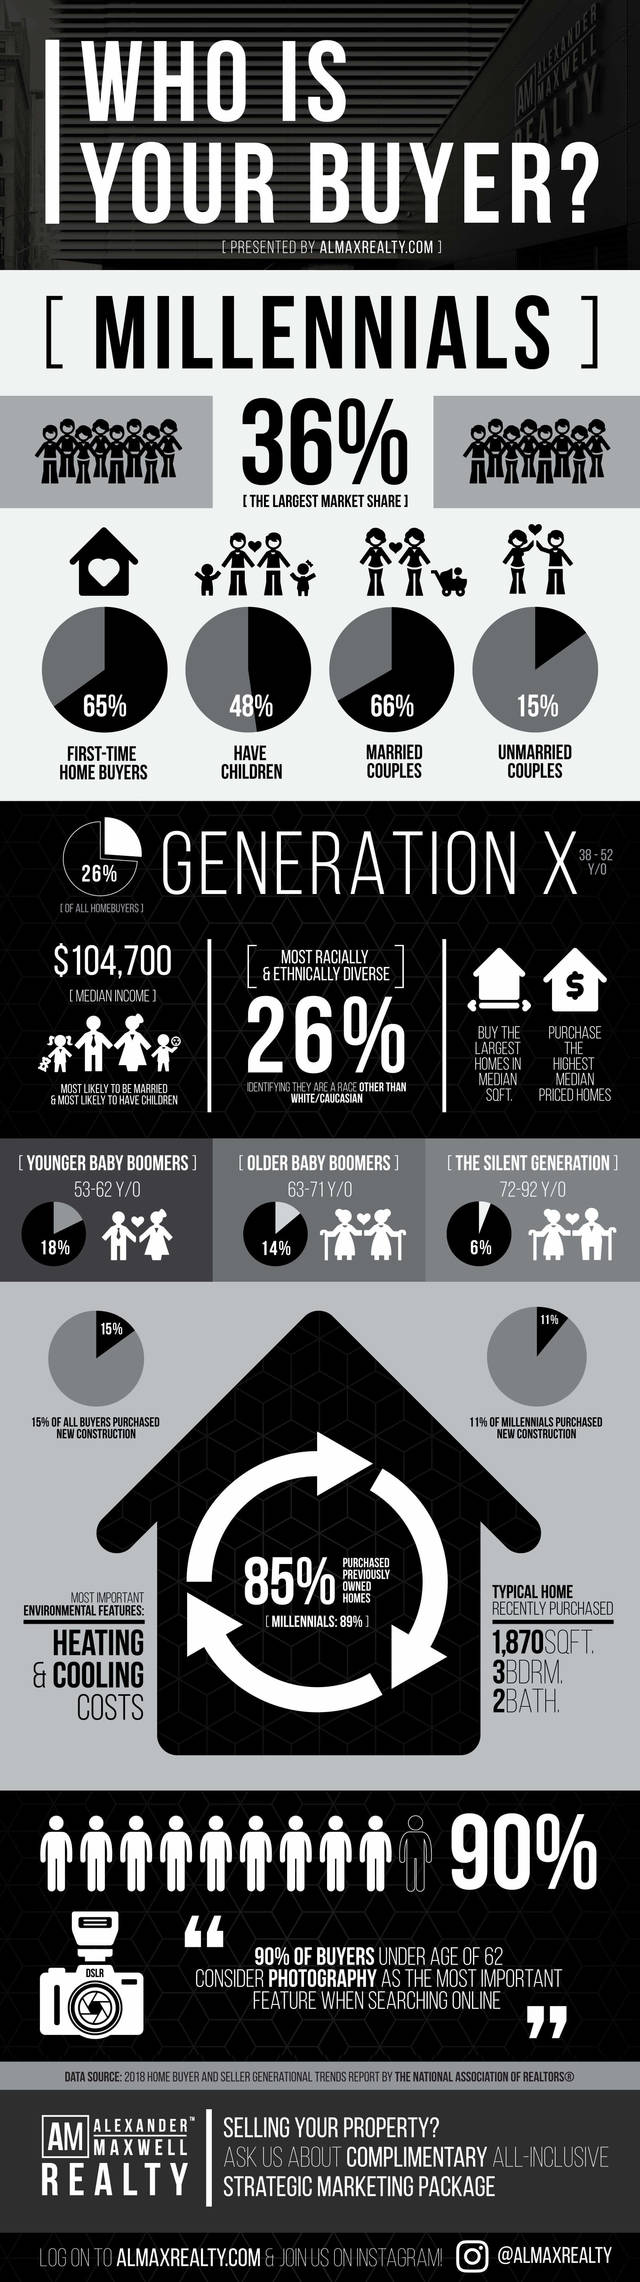 Real estate infographic by almax realty